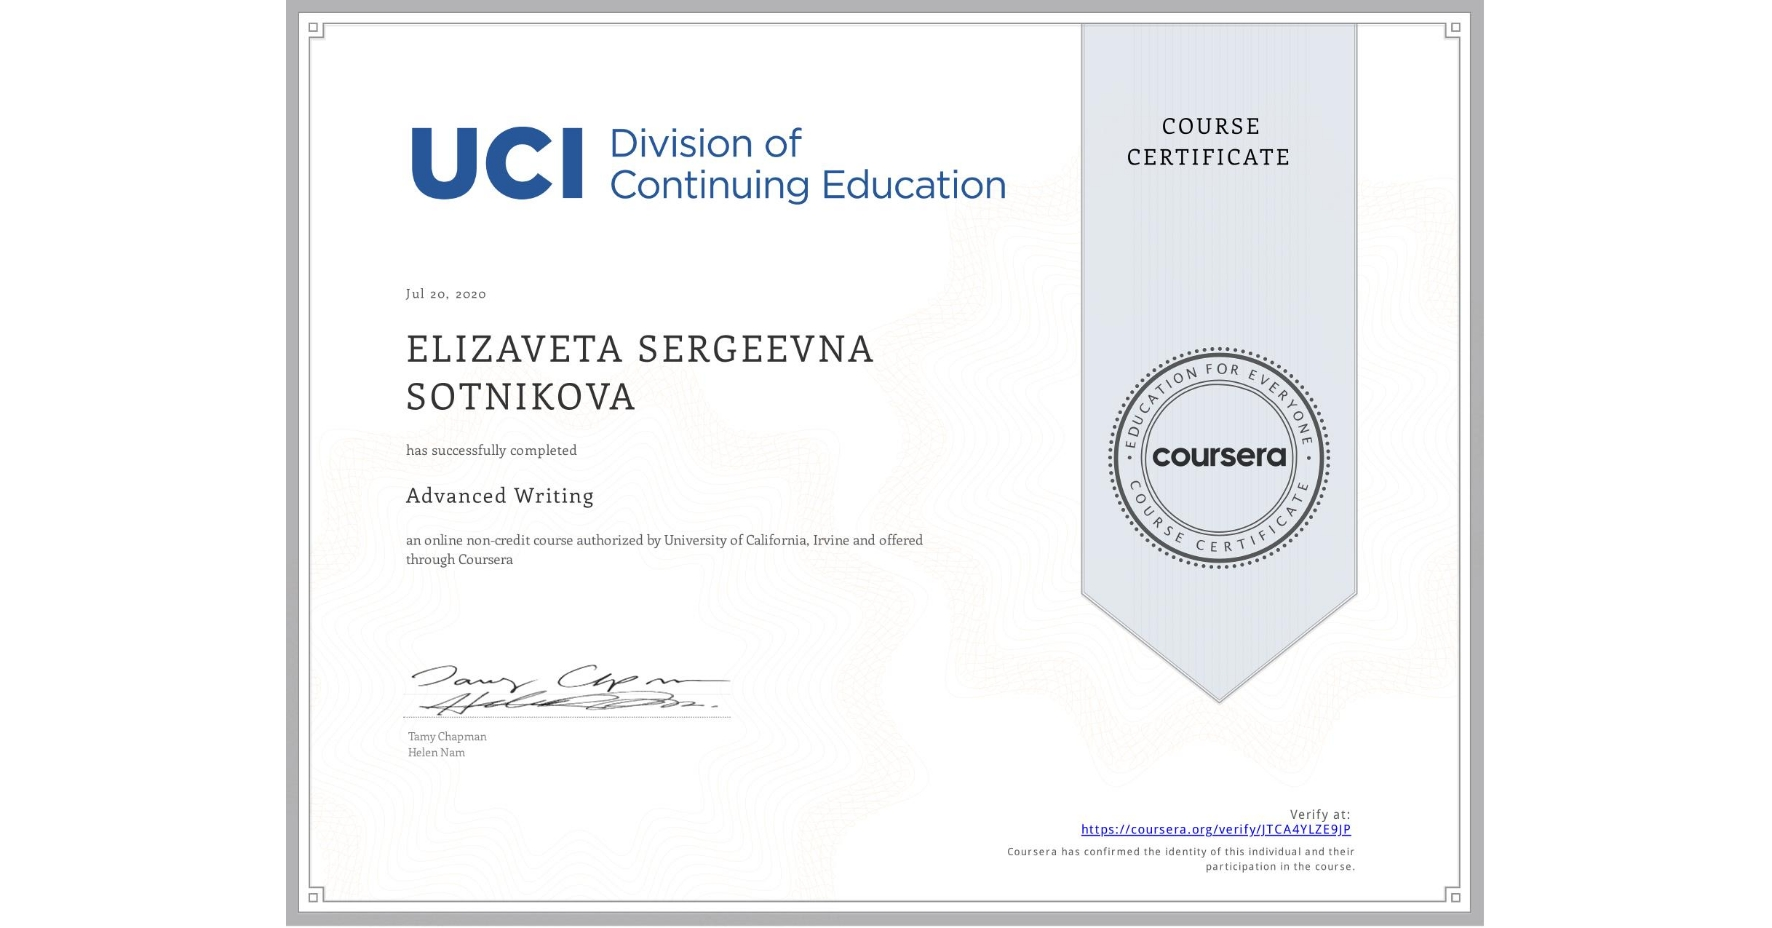 View certificate for ELIZAVETA SERGEEVNA  SOTNIKOVA, Advanced Writing, an online non-credit course authorized by University of California, Irvine and offered through Coursera